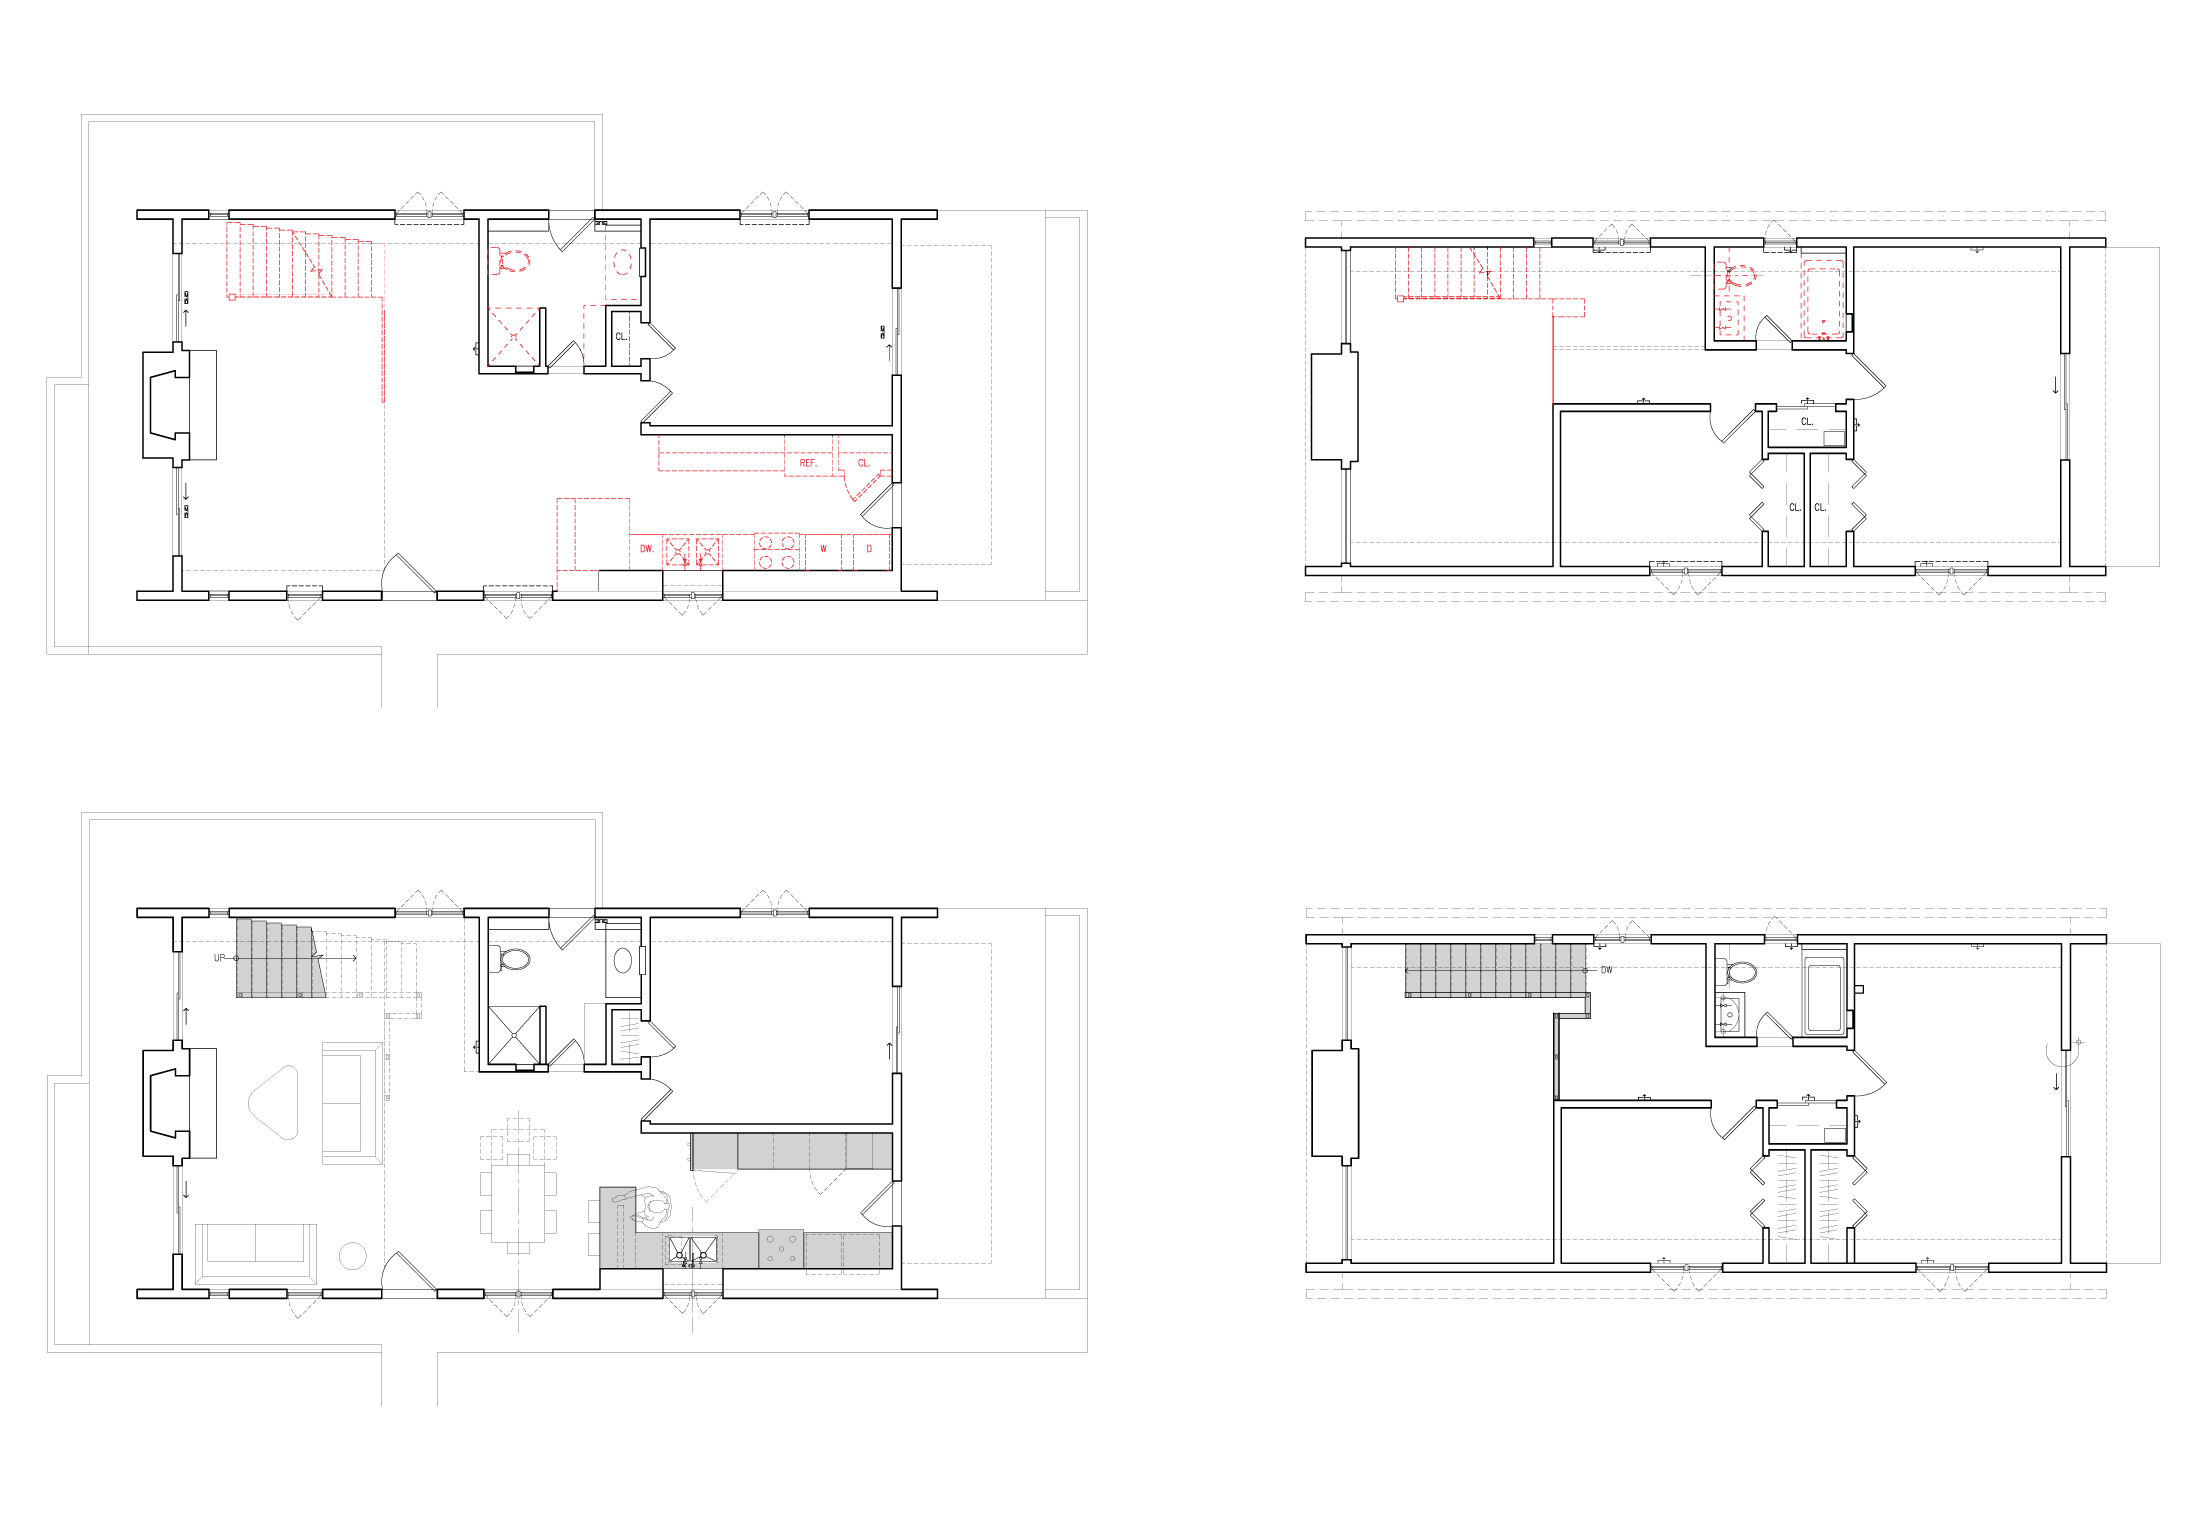 Before and after plans for renovation of New York home to maximise space and design